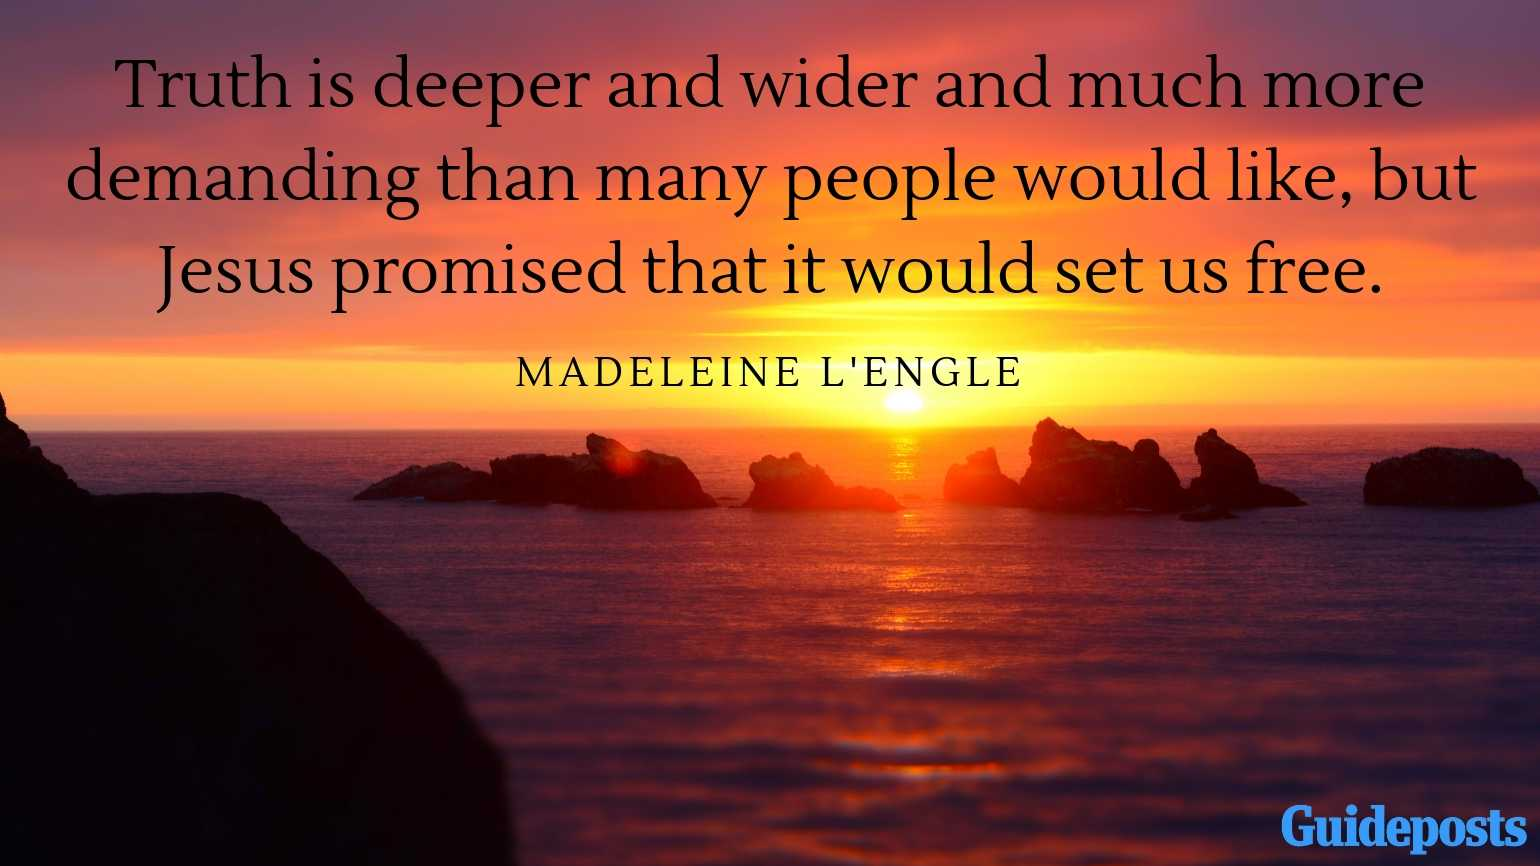 10 Inspiring Madeleine Lengle Quotes Guideposts